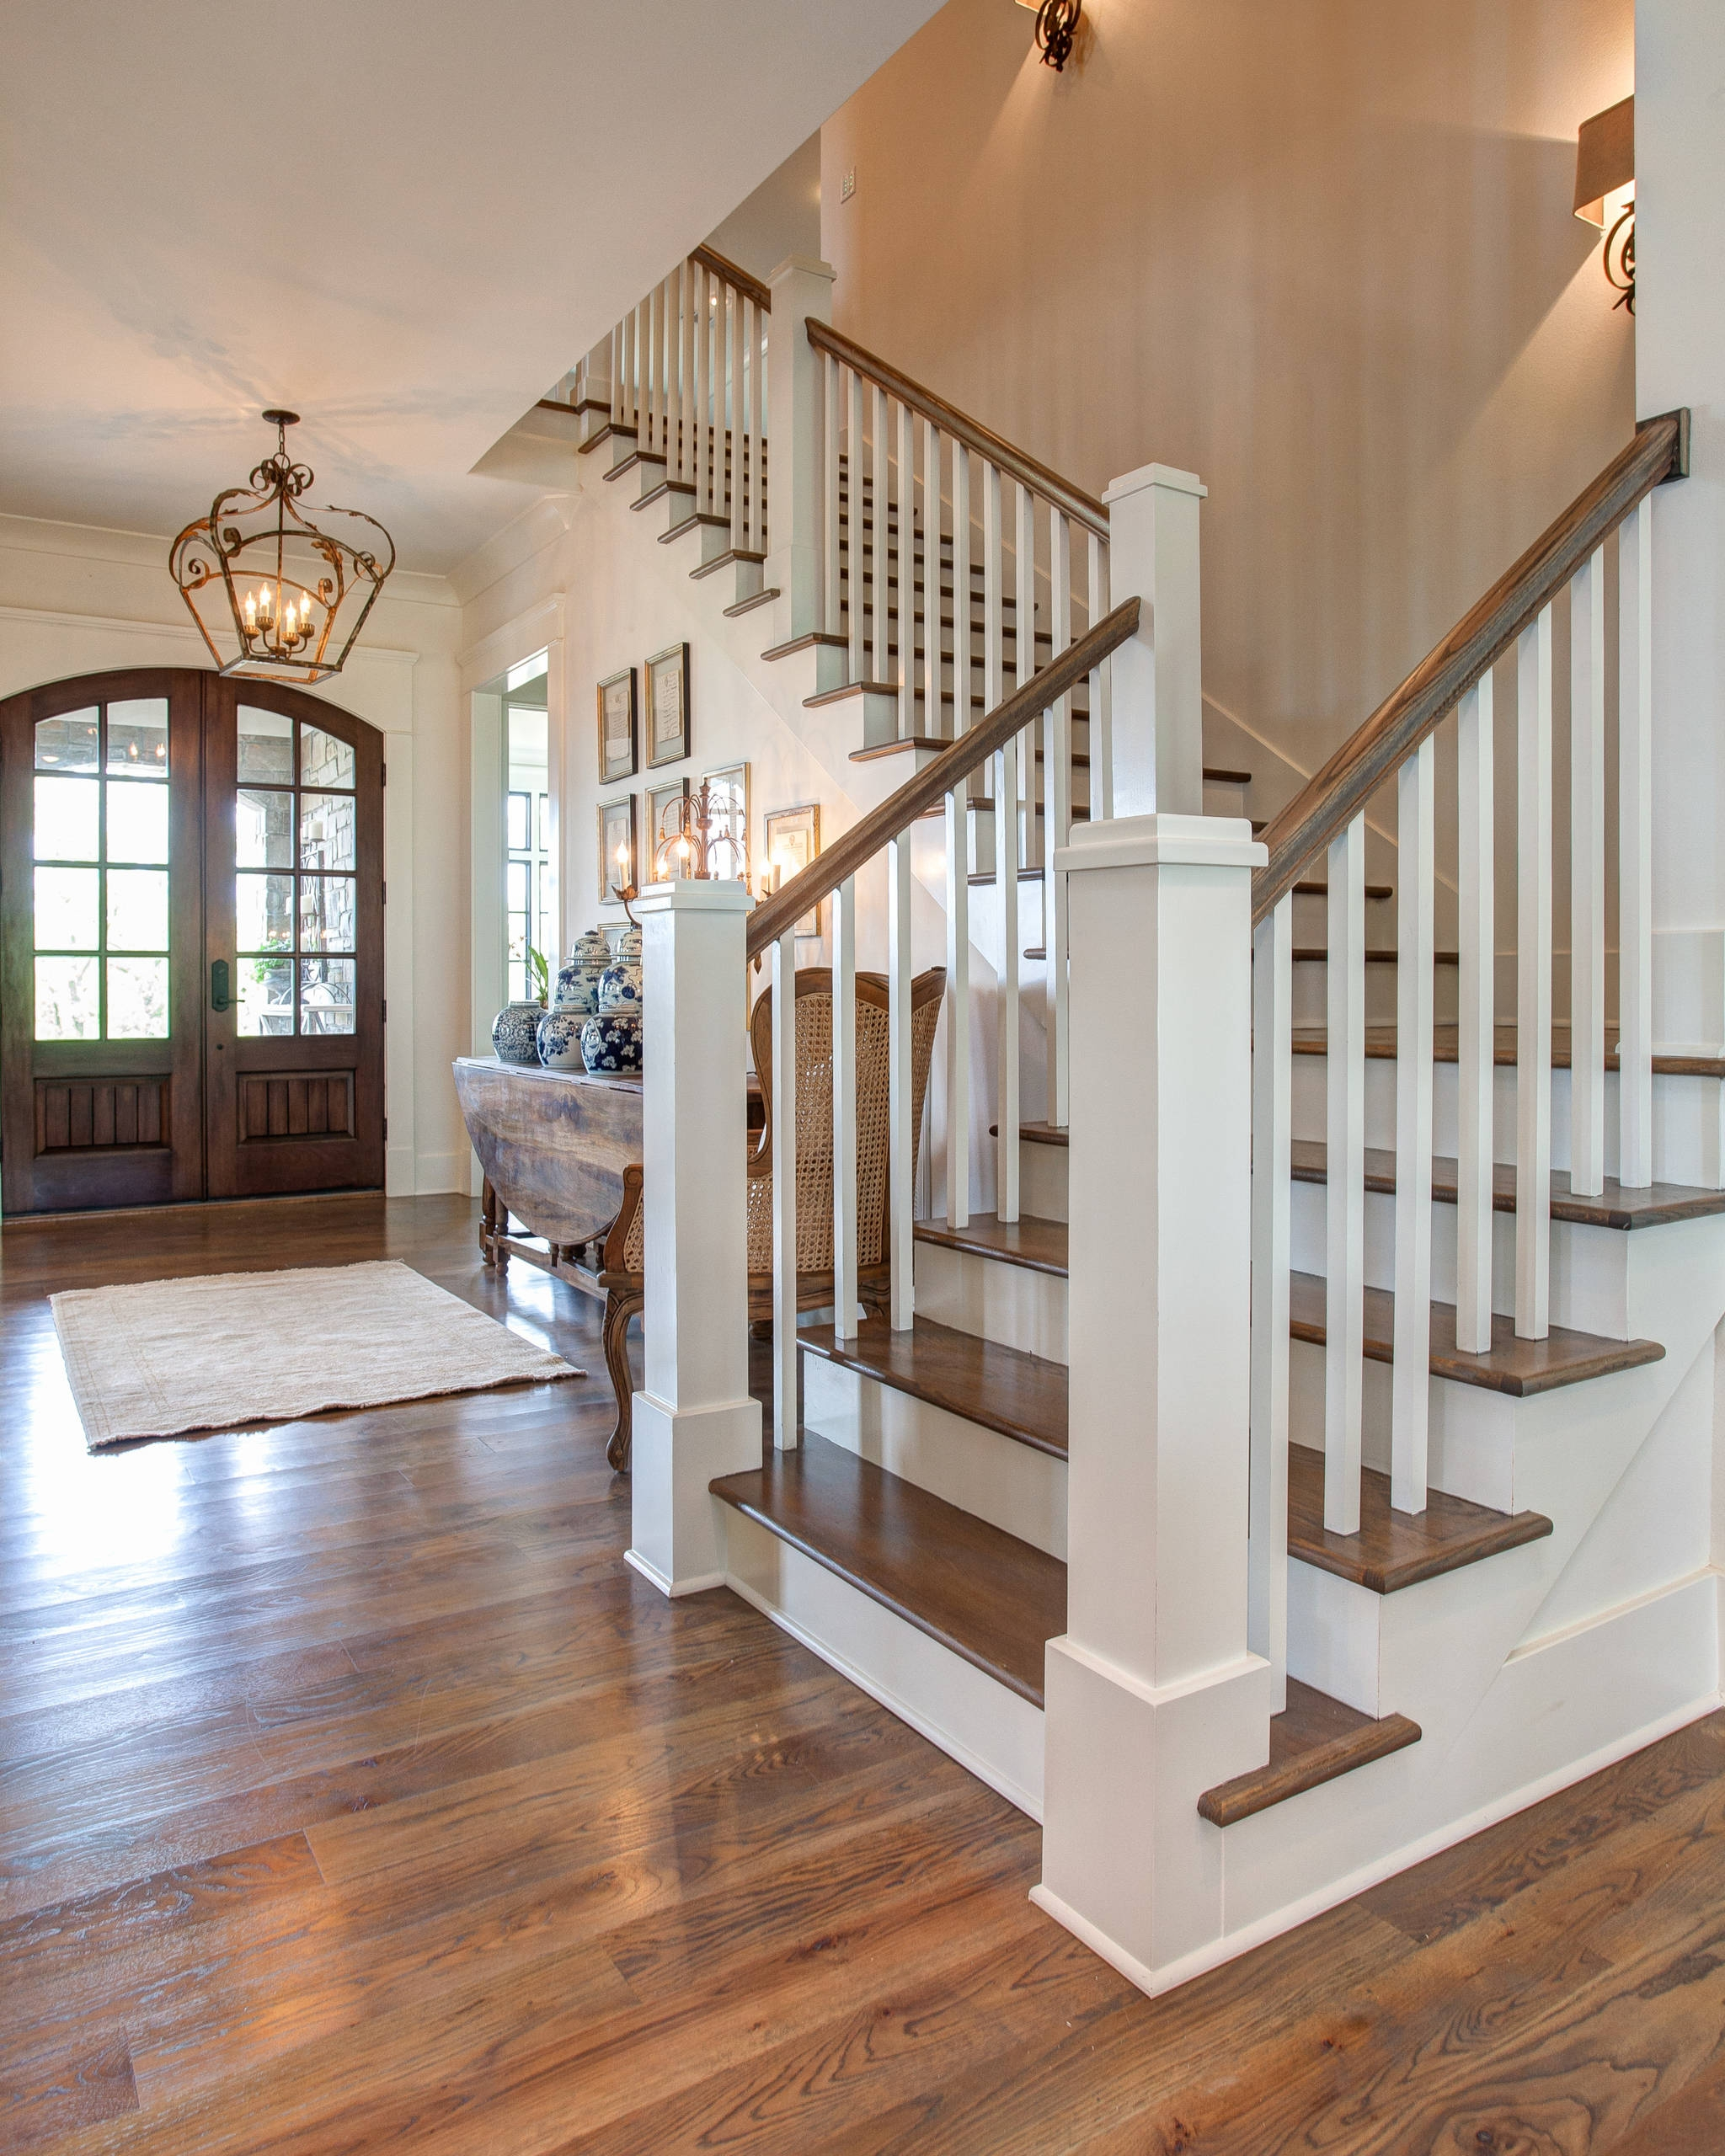 75 Beautiful Wood Stair Railing Pictures Ideas Houzz | Oak Handrails For Stairs Interior | Glass | Stair Treads | Oak Pointe | Wooden | Stair Parts